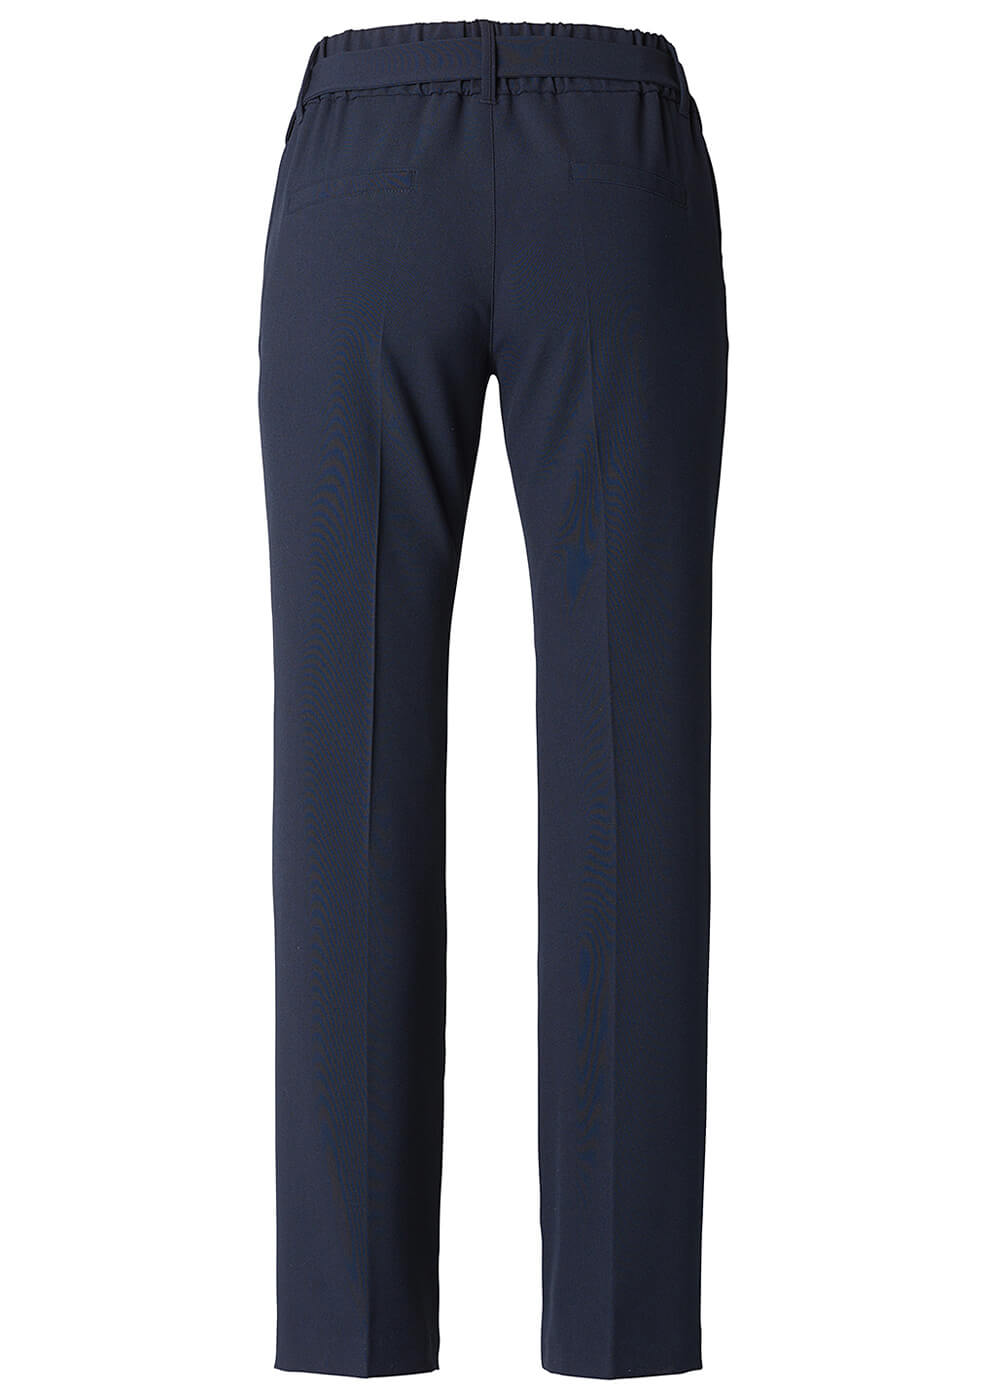 Belted Navy Straight Leg Maternity Trousers by Esprit